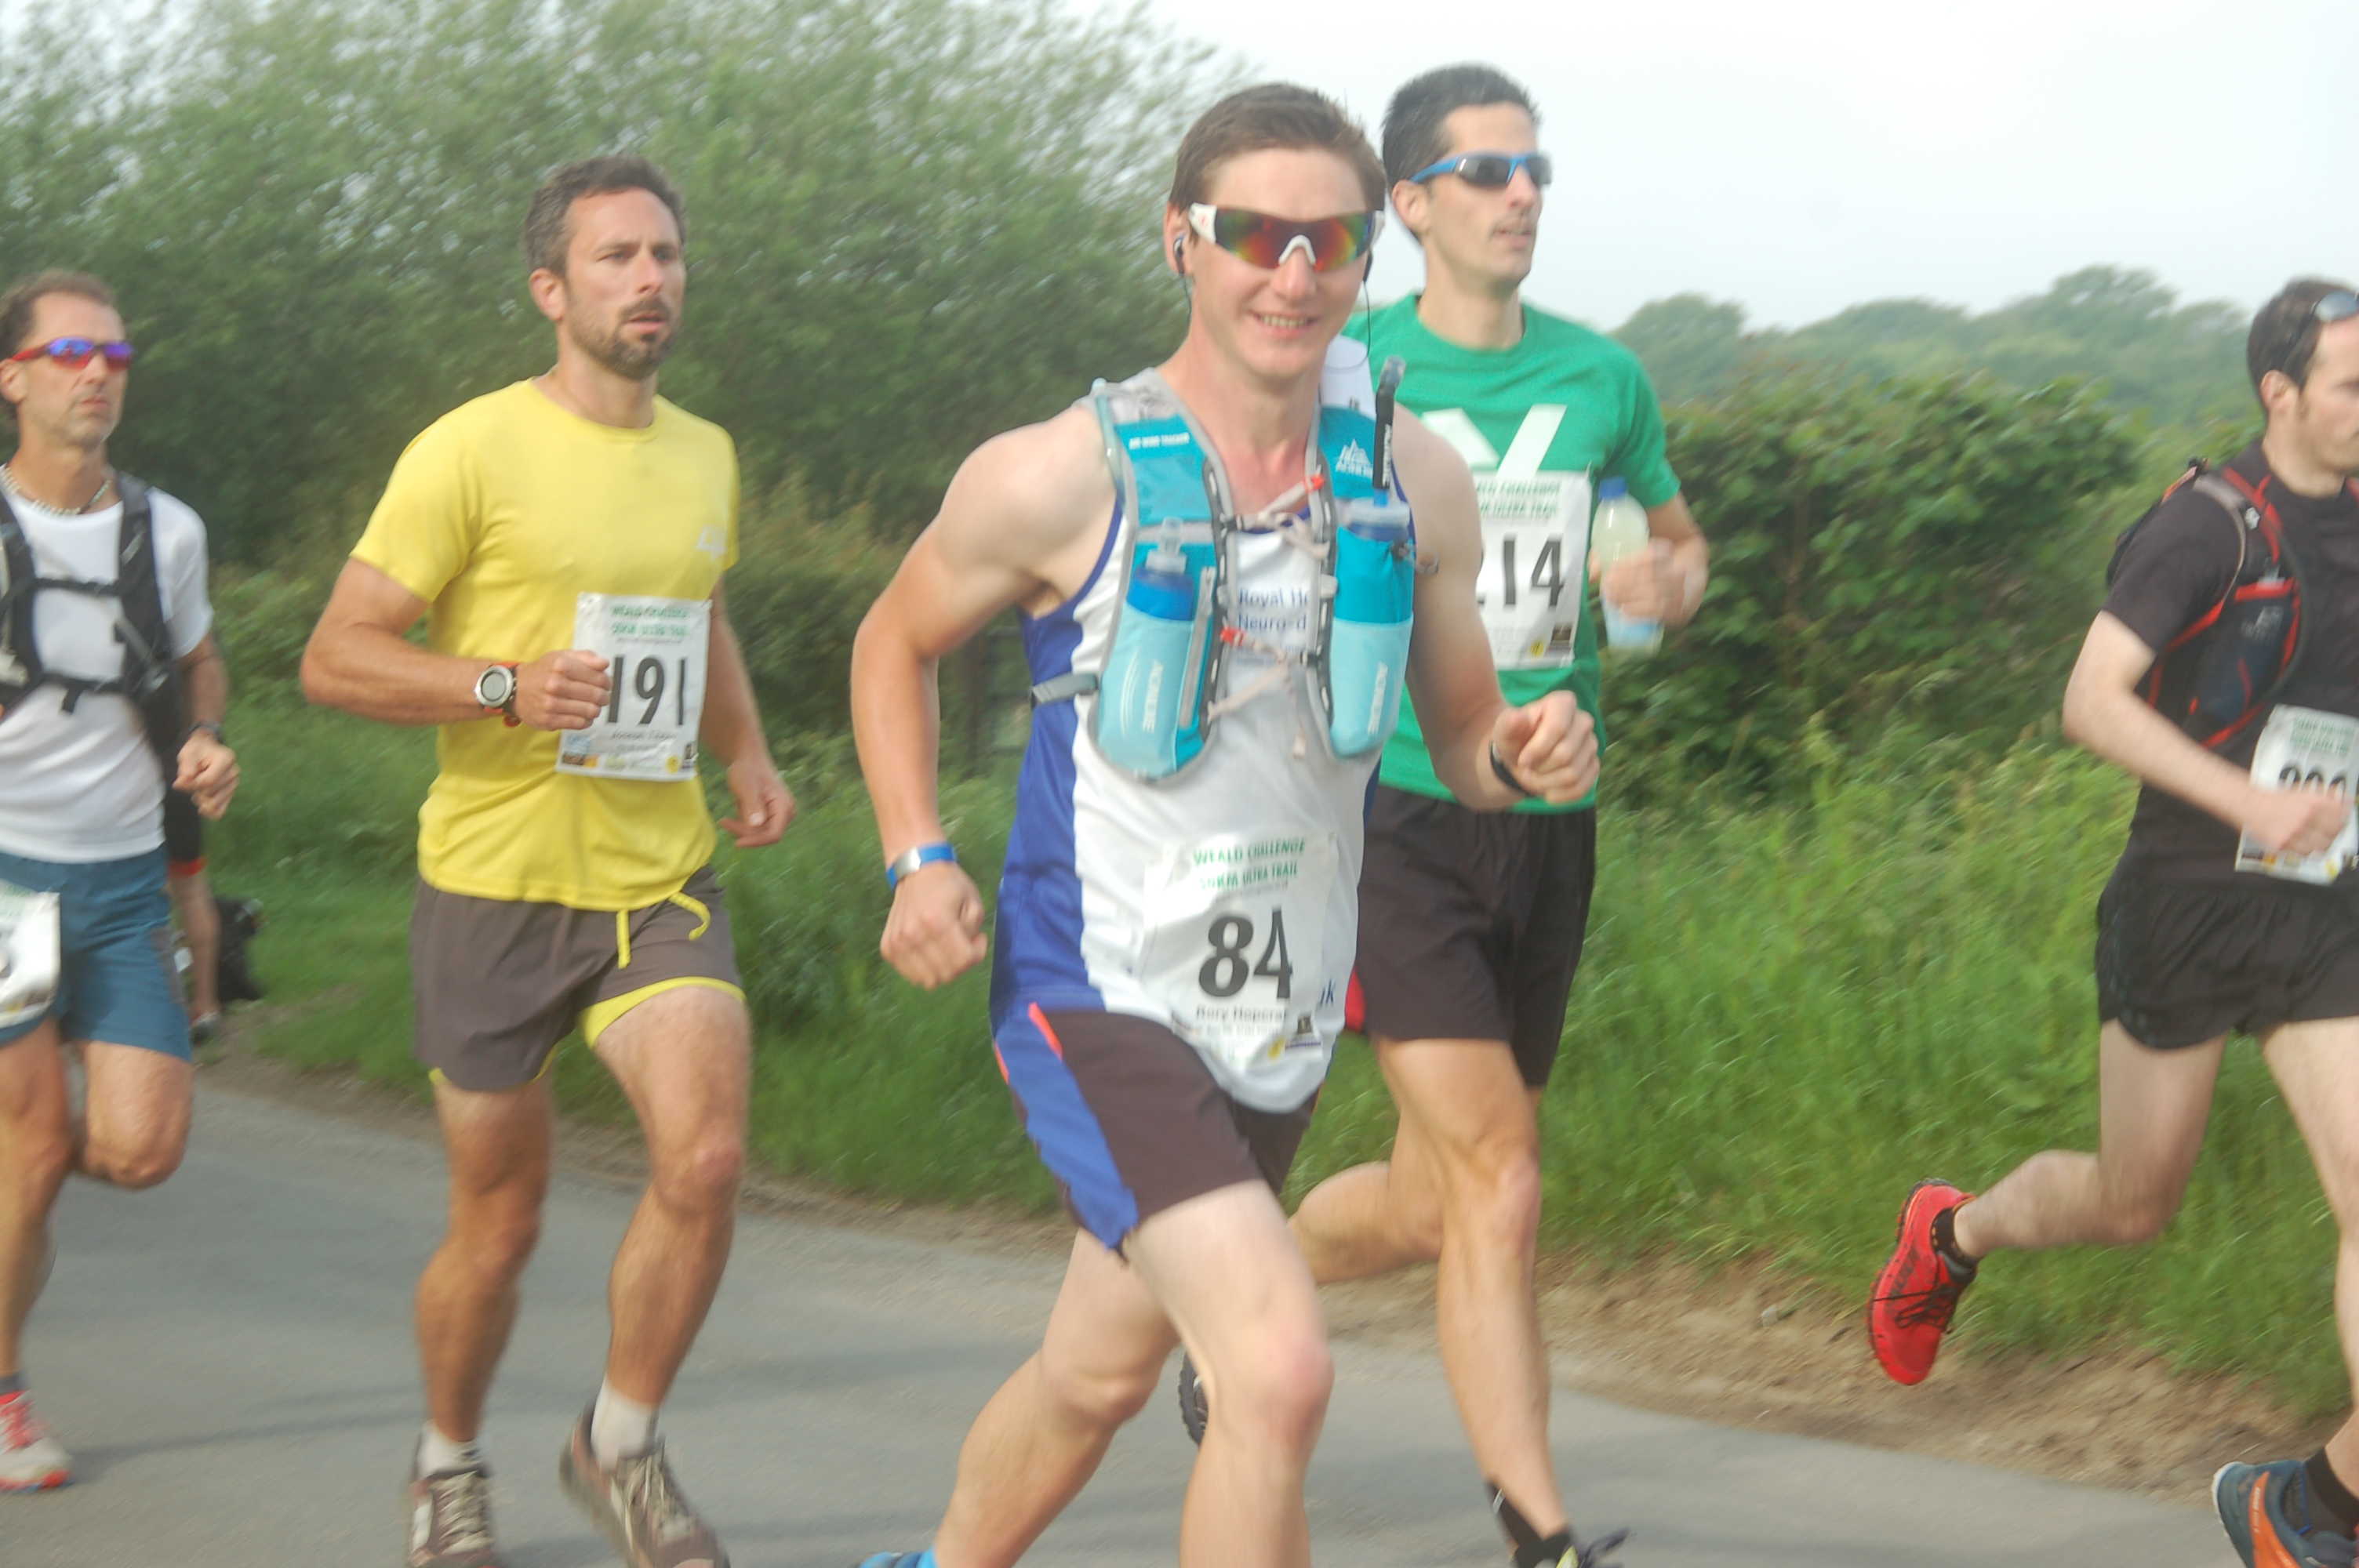 The Weald Challenge - 50k Trail Ultra-Marathon.